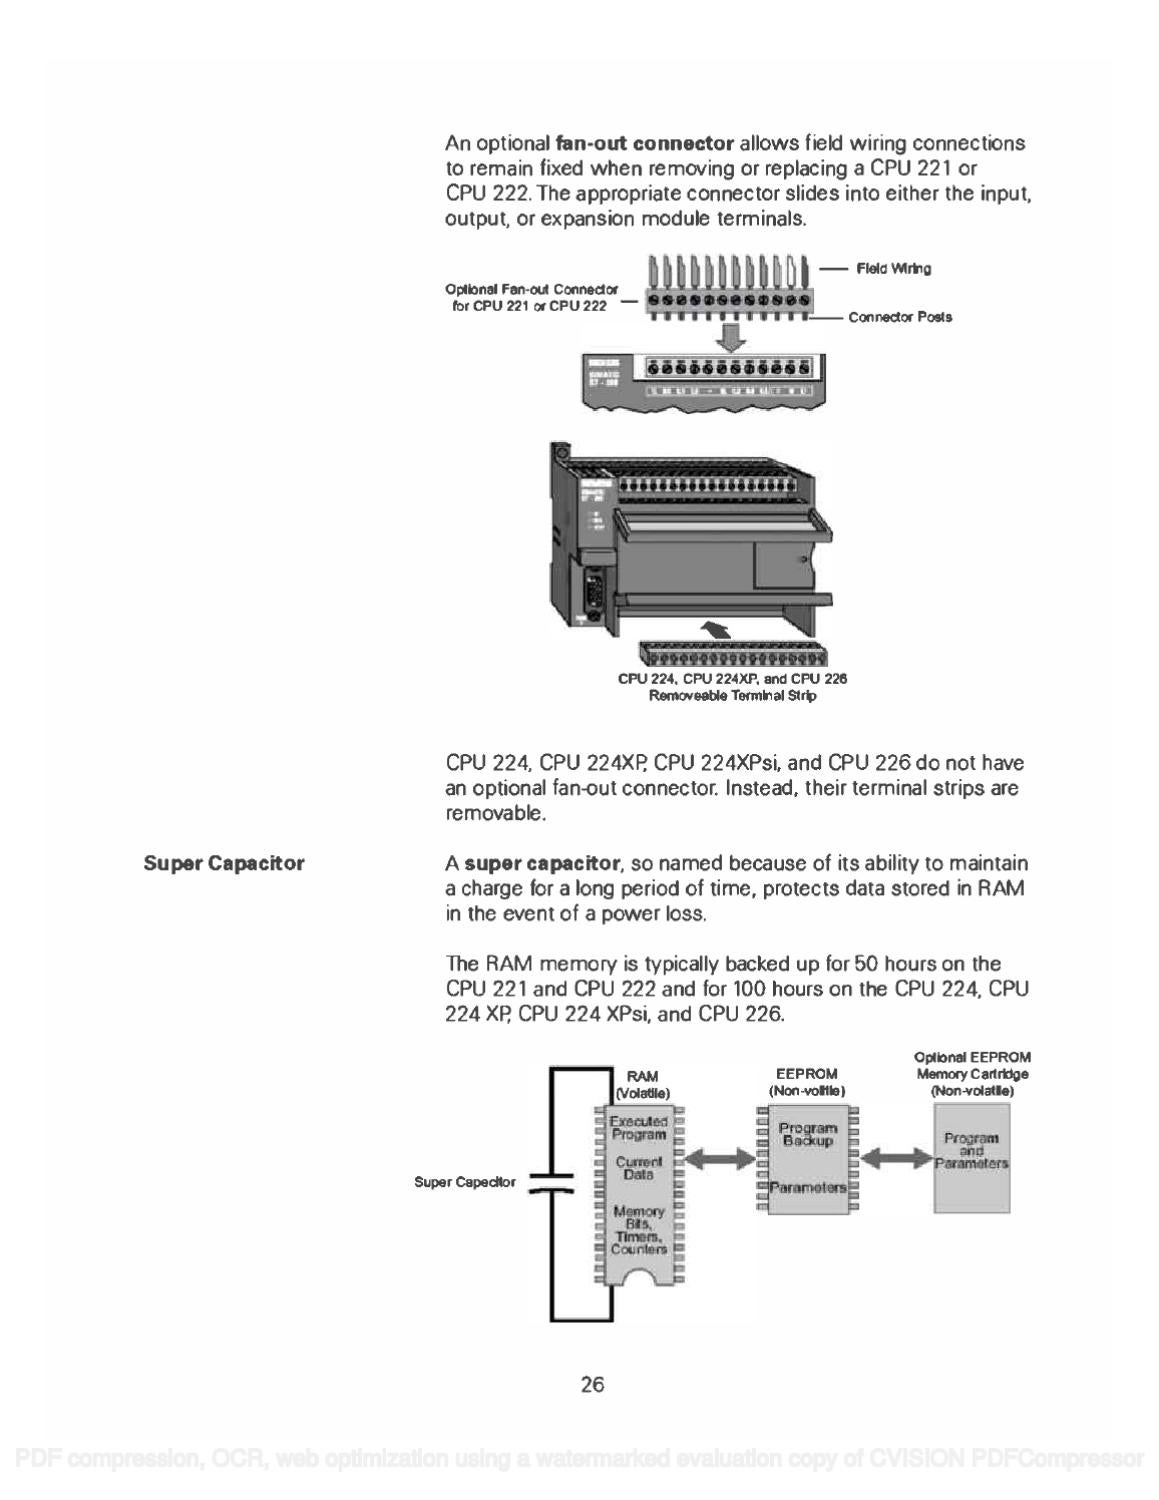 Basics Of Plcs By Siemens Rmc Process Controls Filtration Inc Cpu Connector Wiring Diagram Issuu